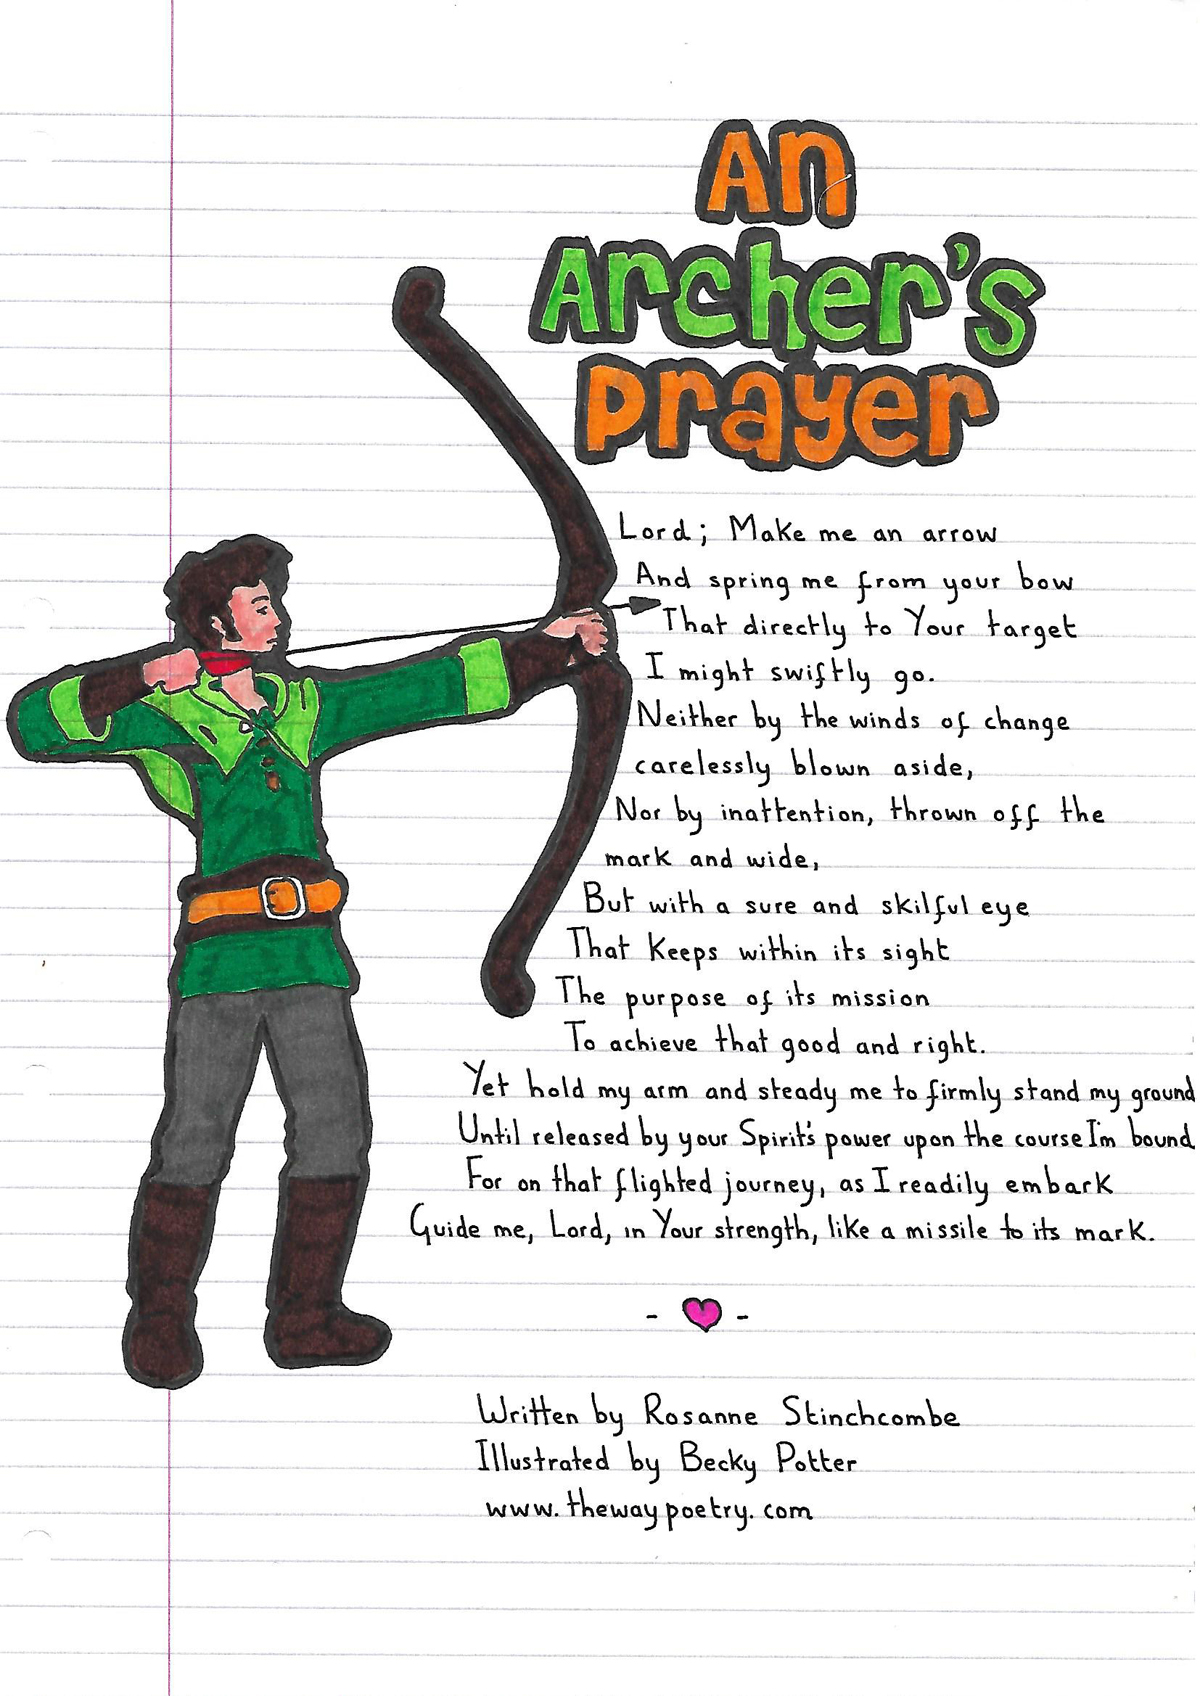 An Archer's Prayer by Rosanne Stinchcombe